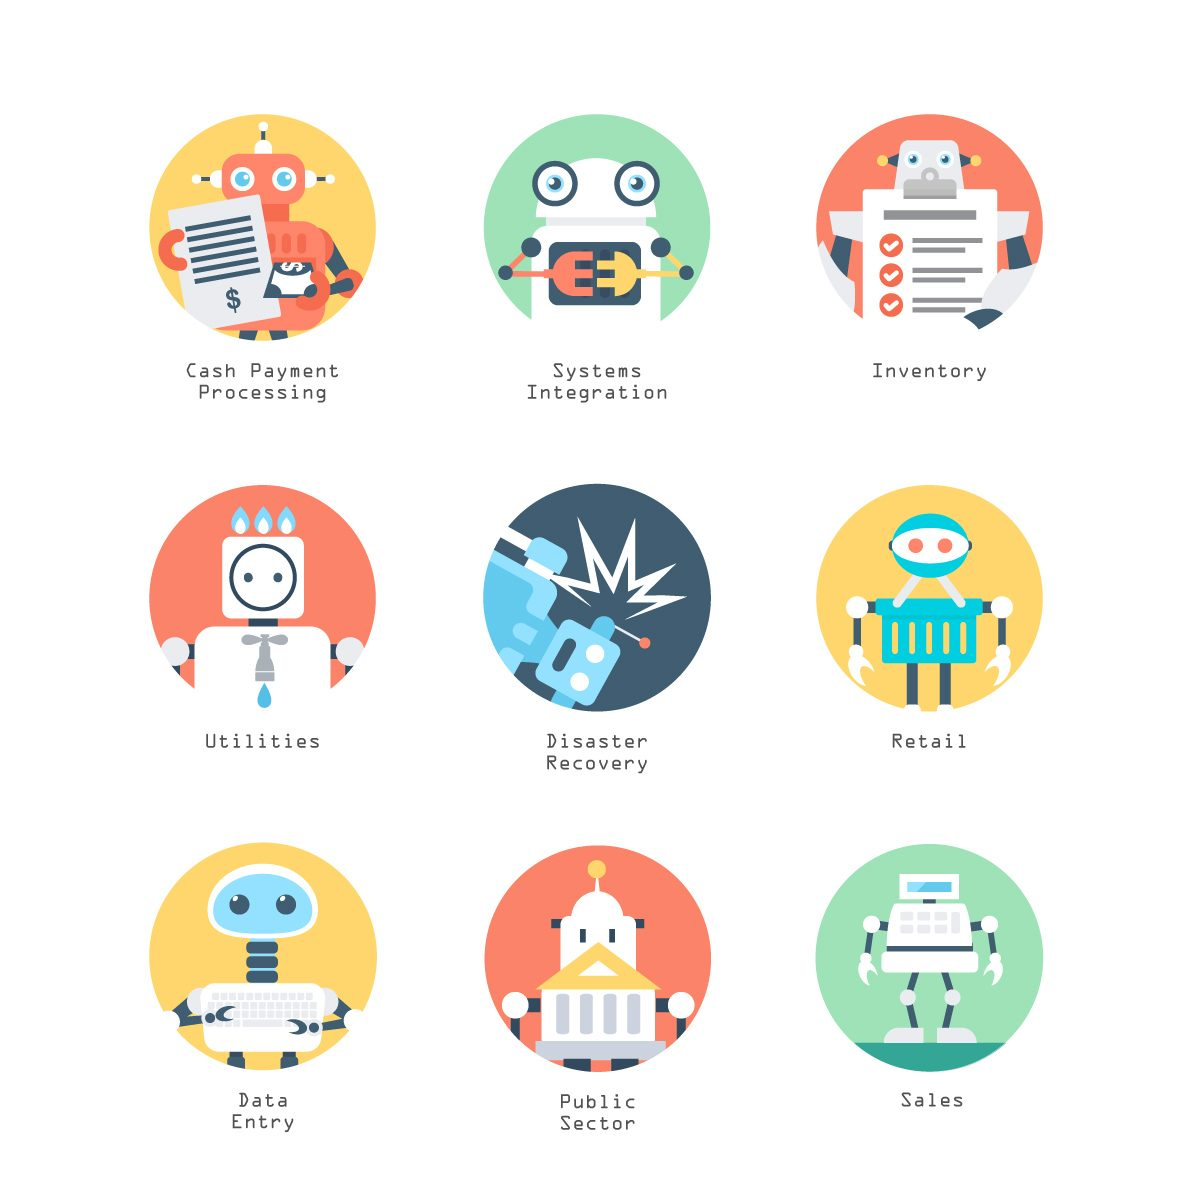 Icons designed to engage